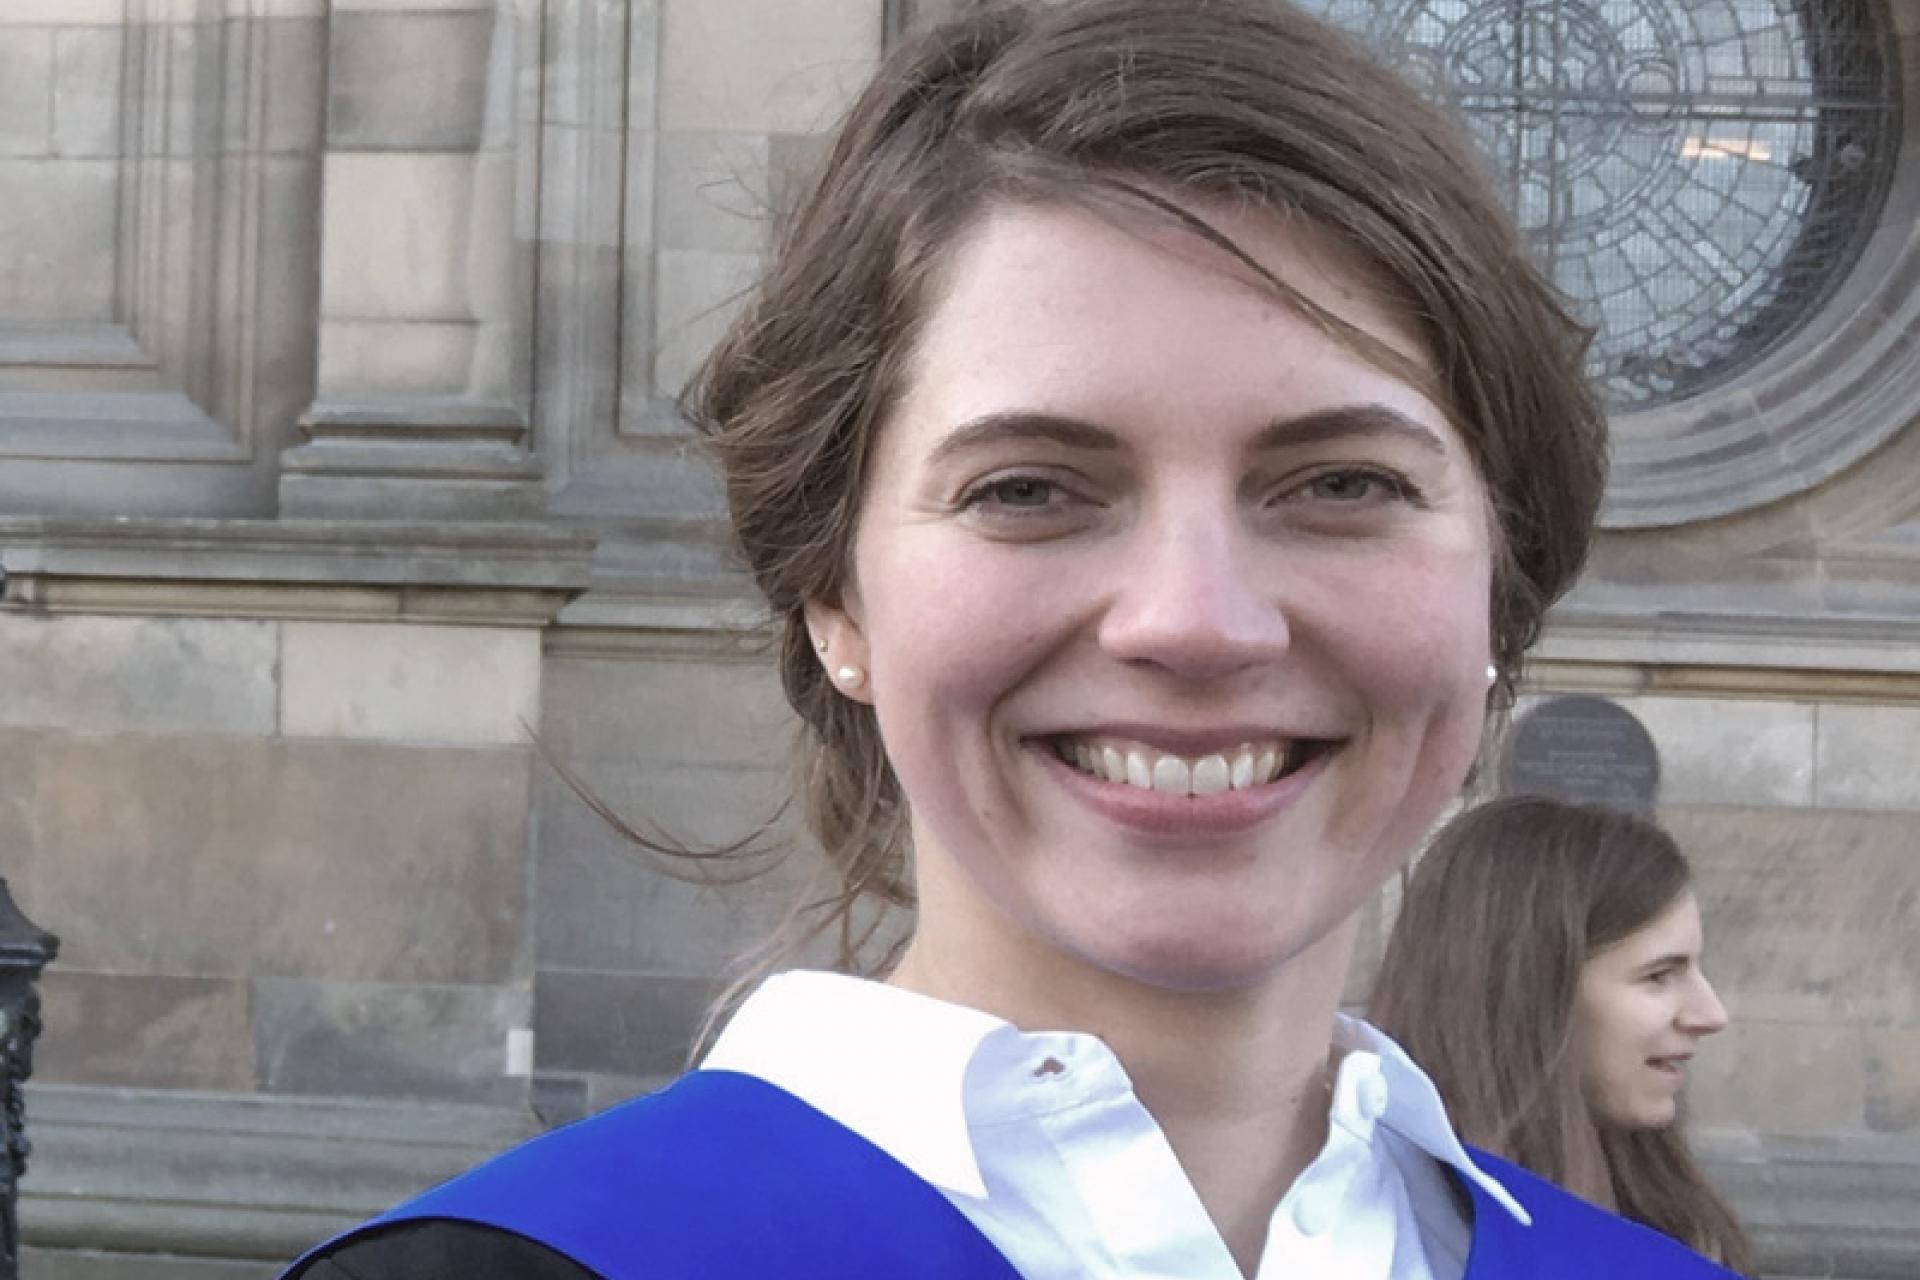 Hannah Frahm, LLM in Comparative and European Private Law Graduate